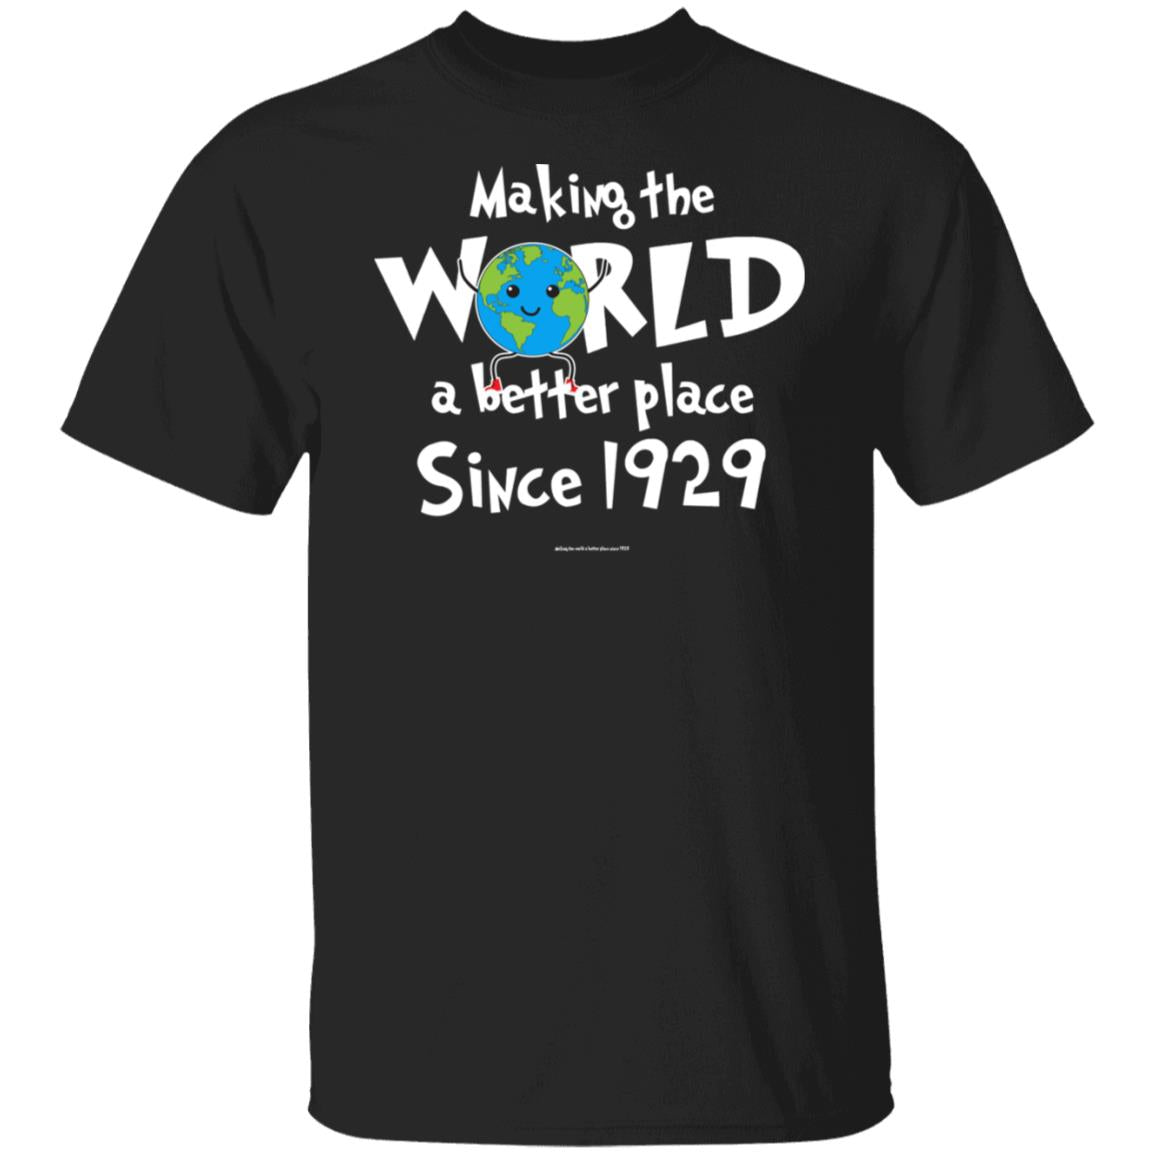 Making-the-world-a-better-place-since-1929 Black T-Shirt 99promocode